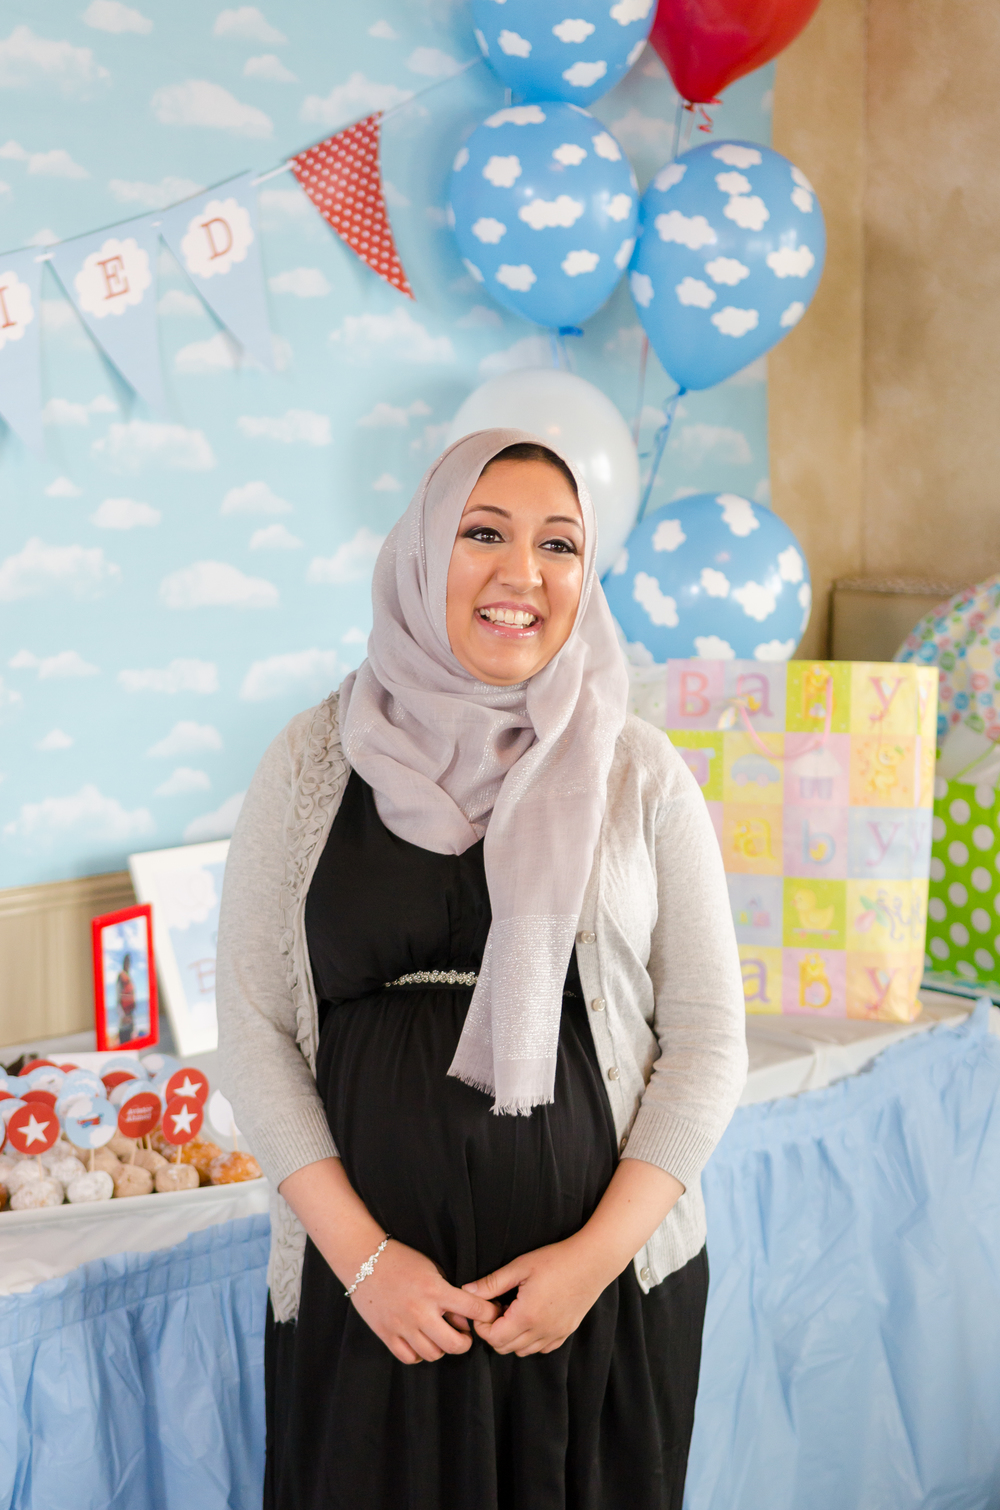 surprisebabyshower2.jpg